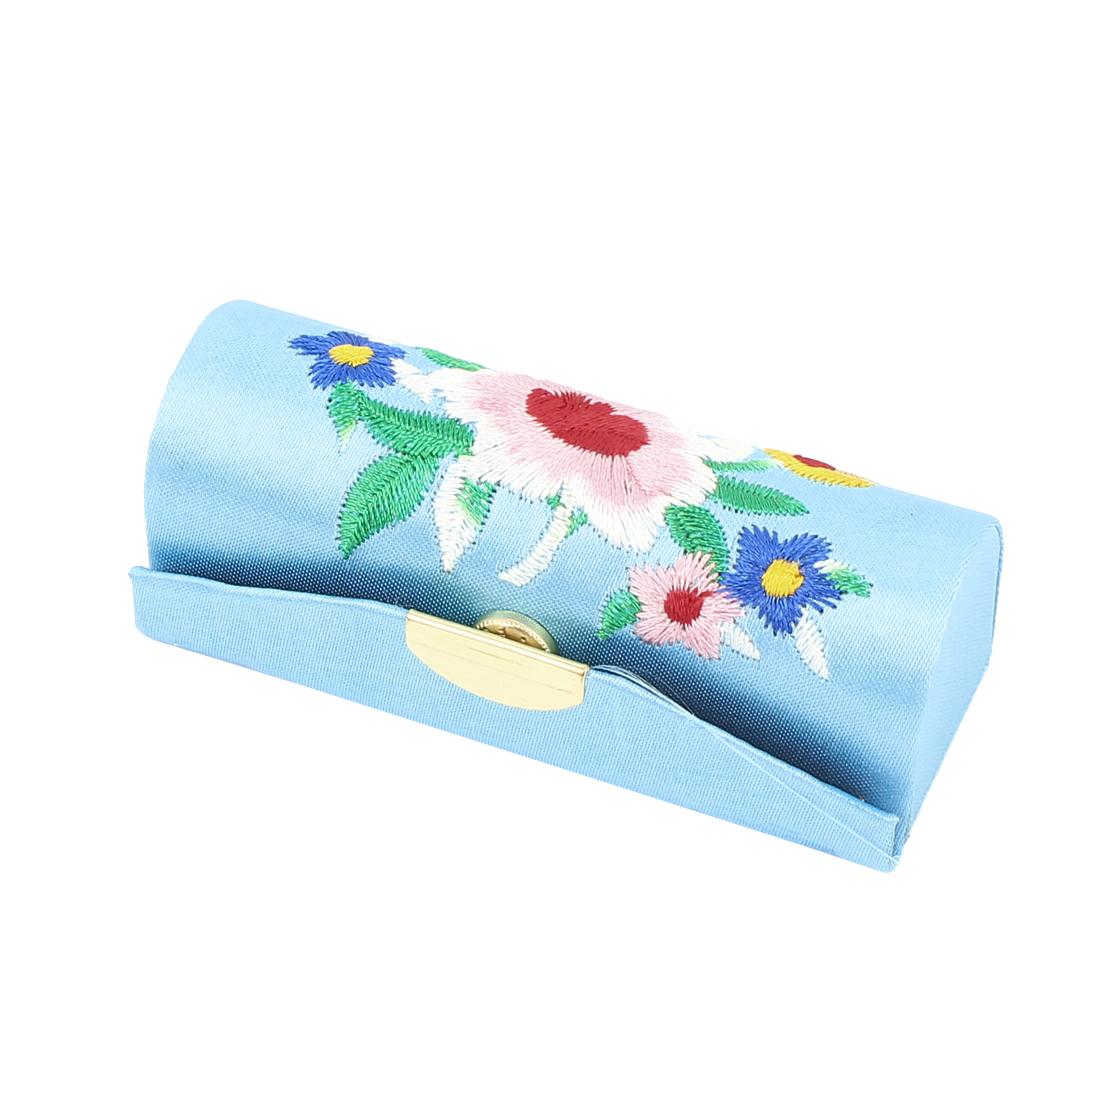 Lady Floral Embroidery Mirror Lipstick Lip Balm Chap Stick Case Jewelry Box Holder Blue